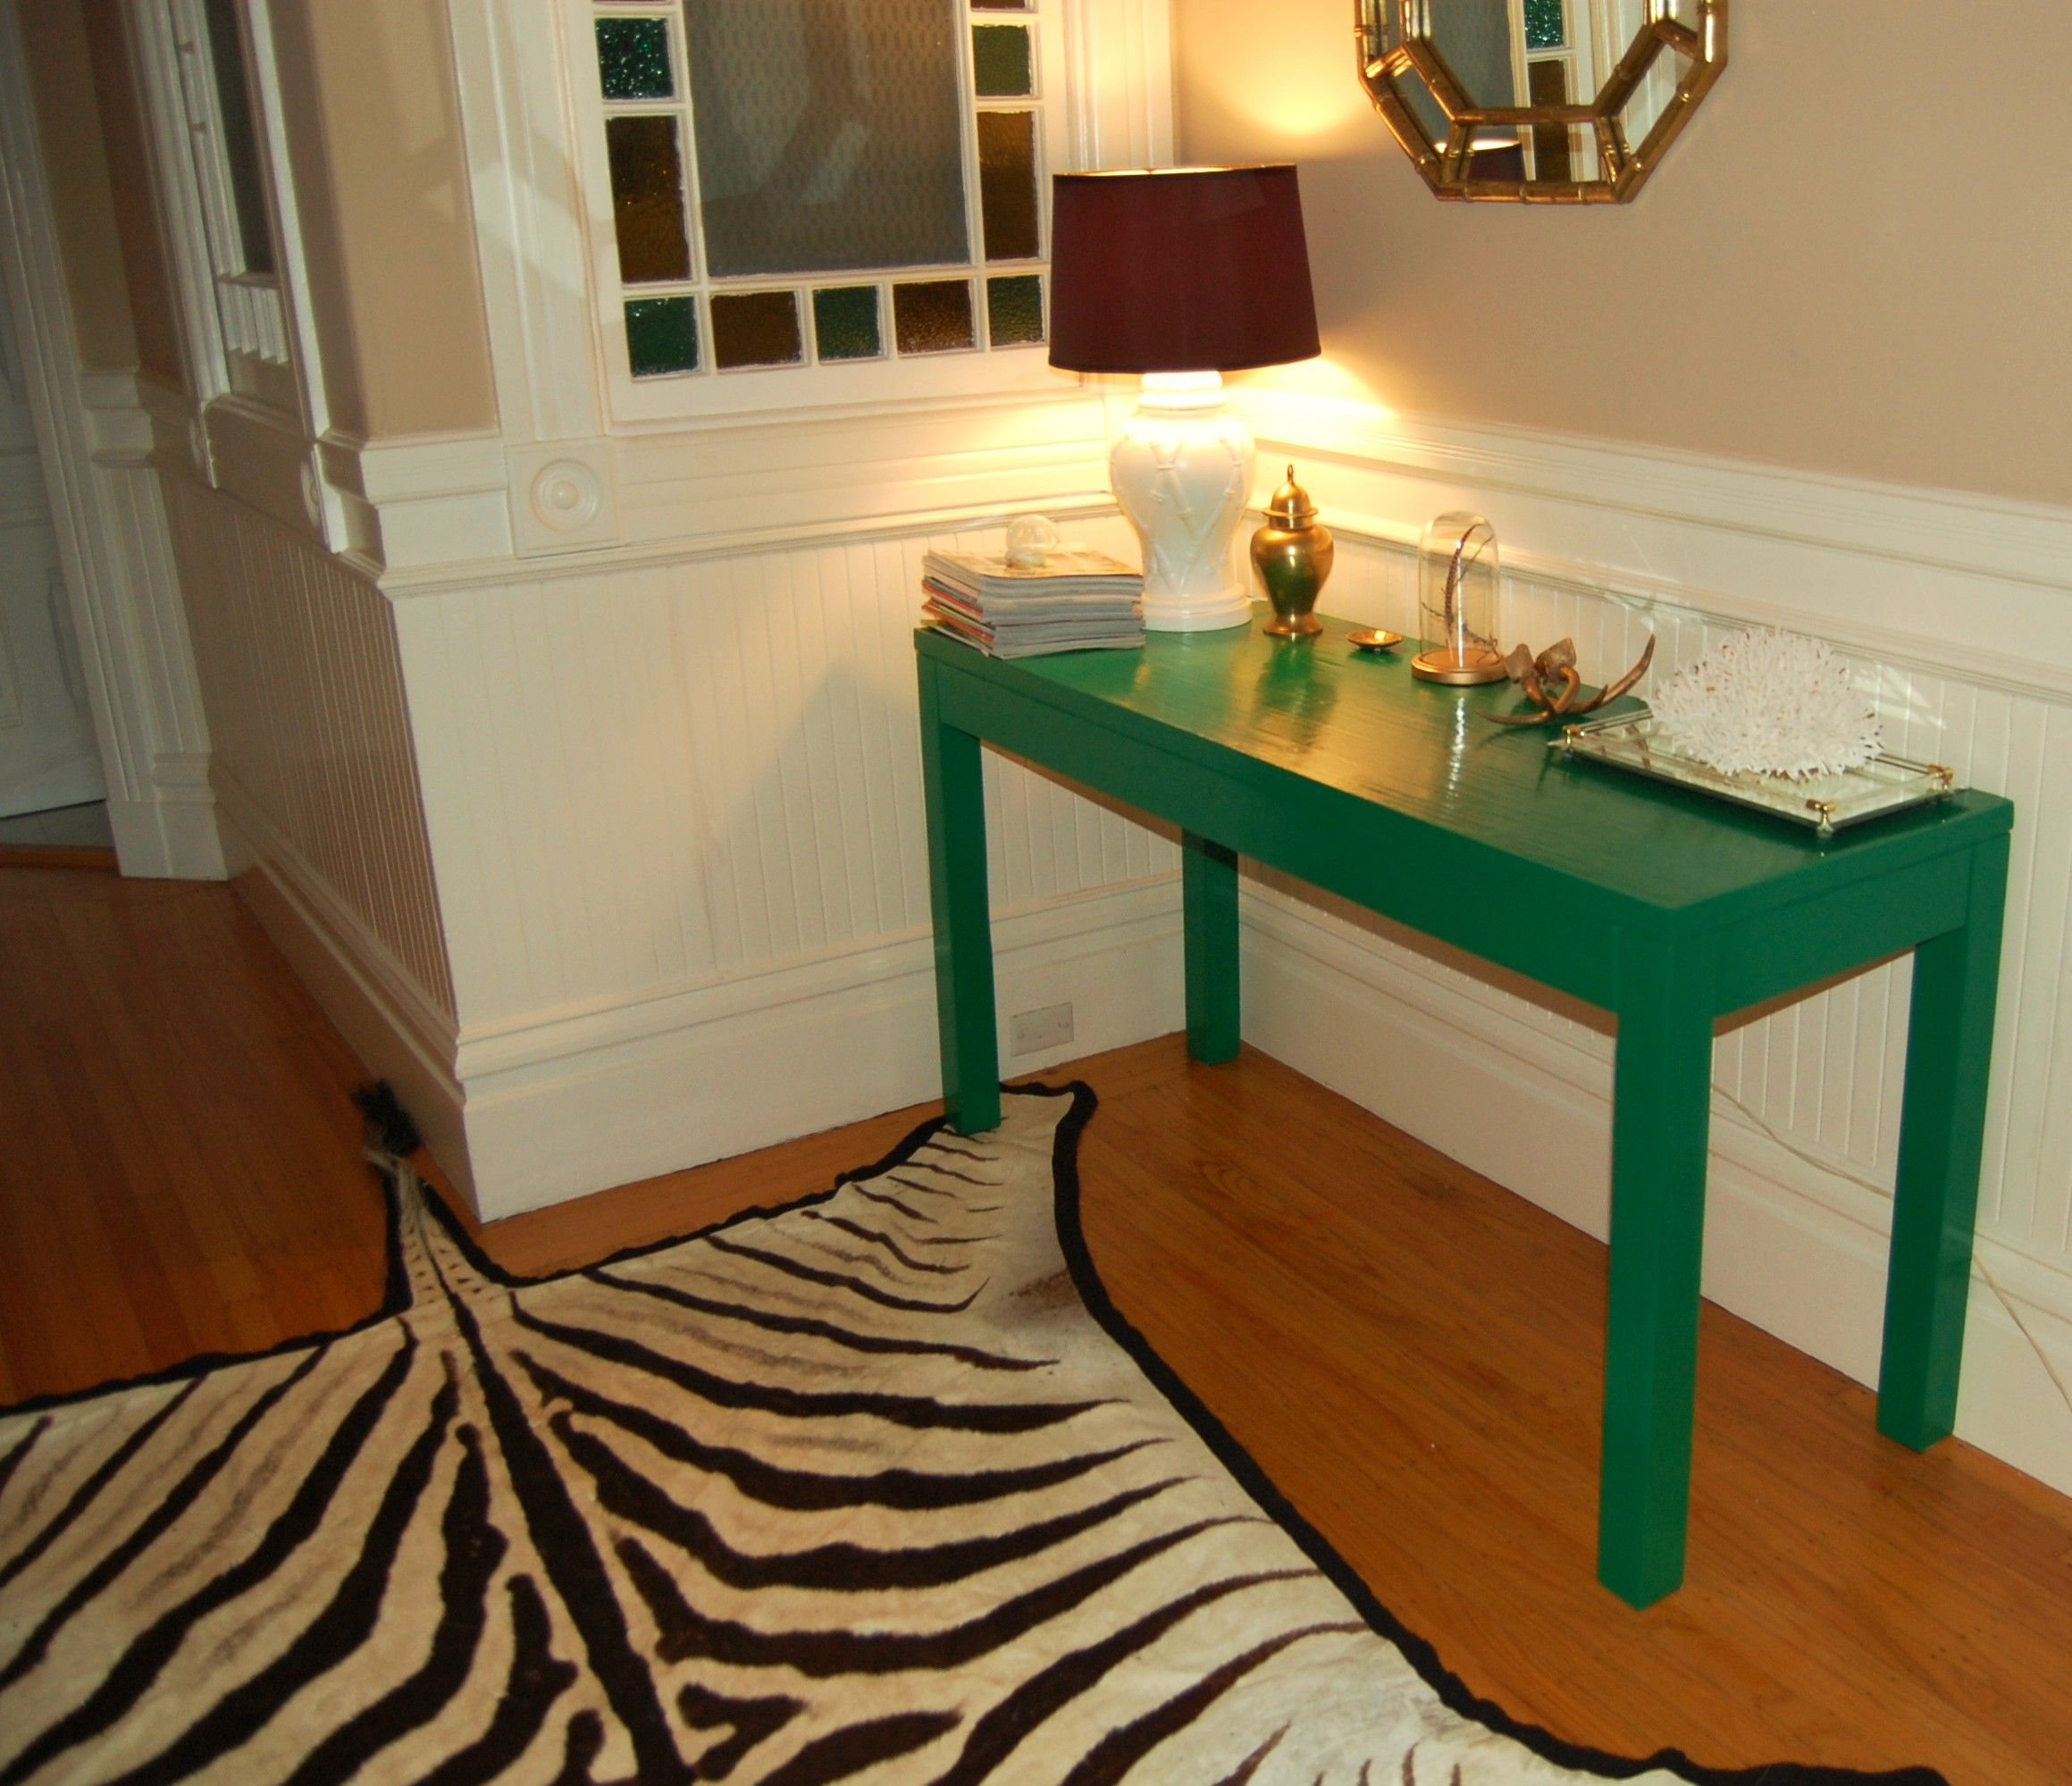 Kelly Green Lacquered Console Table And Zebra Skin Rug   We Refurbished The  Table. Amazing Ideas